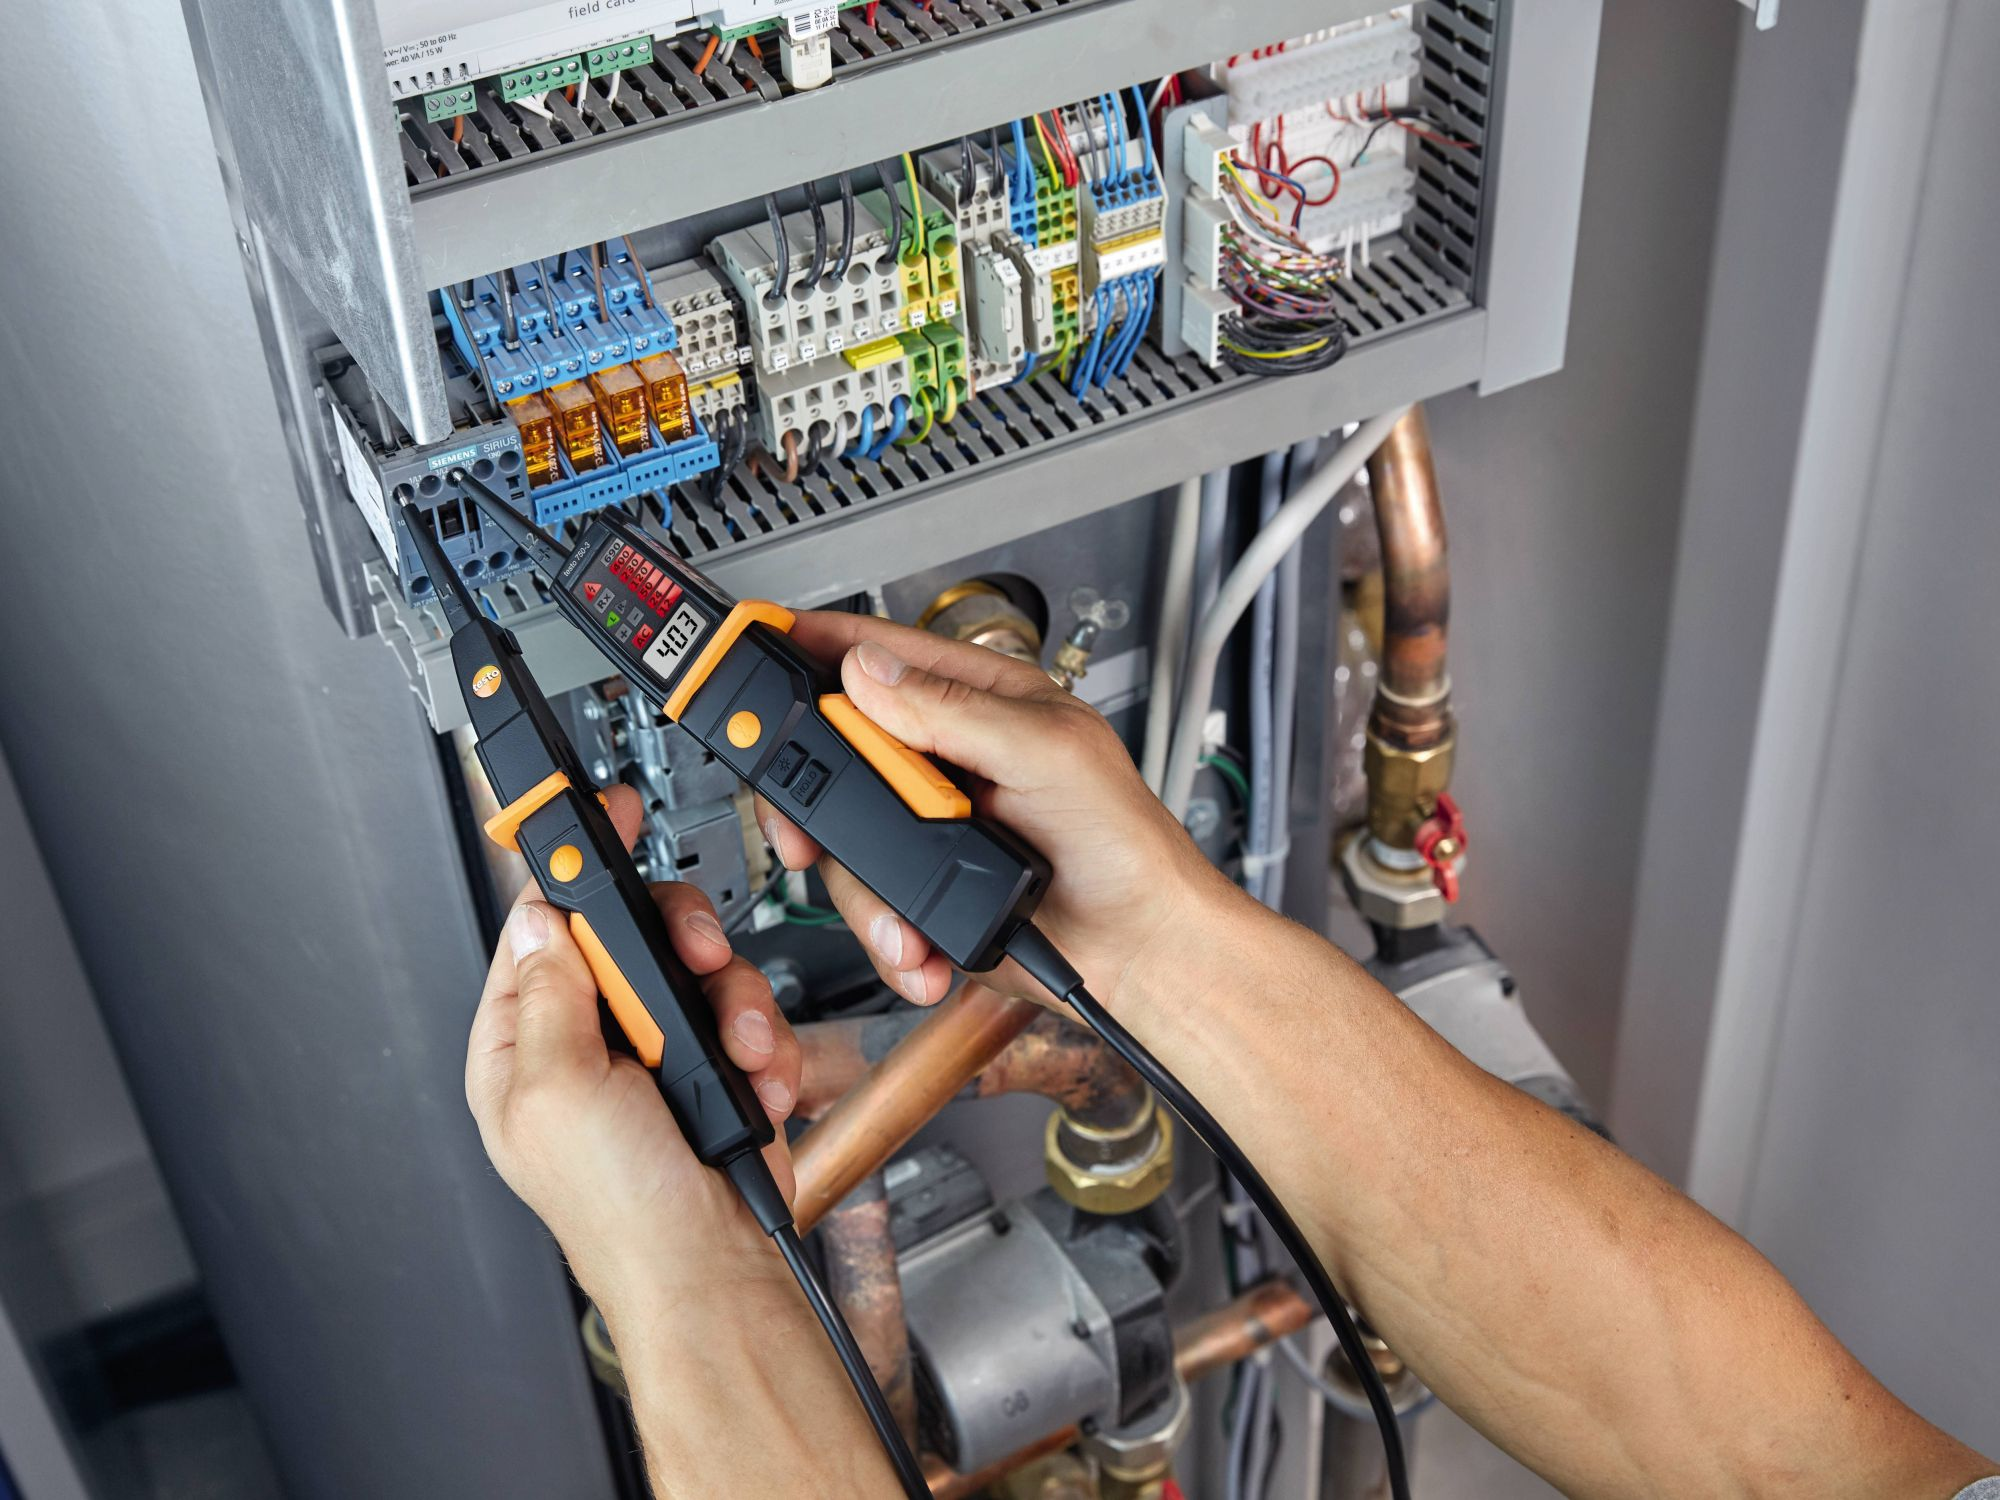 Test electrical installations with voltage tester